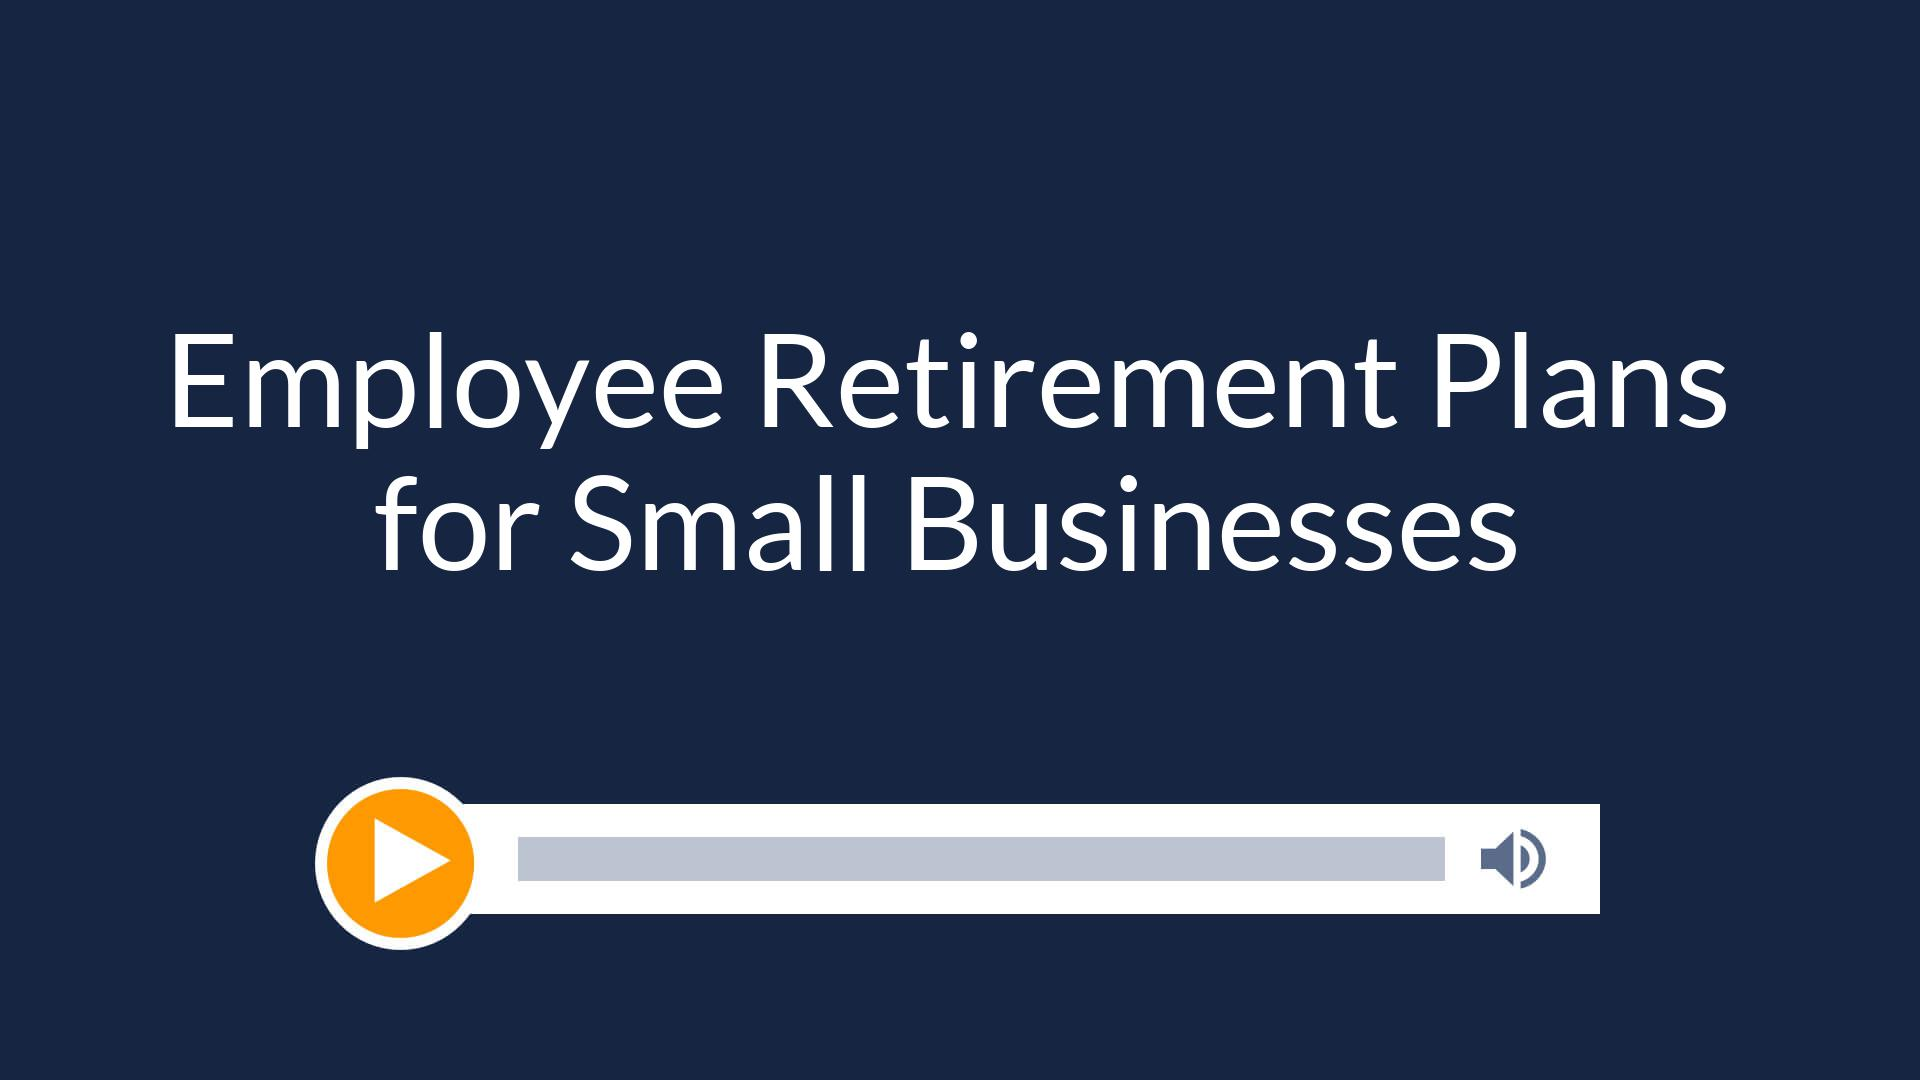 Employee Retirement Plans for Small Businesses